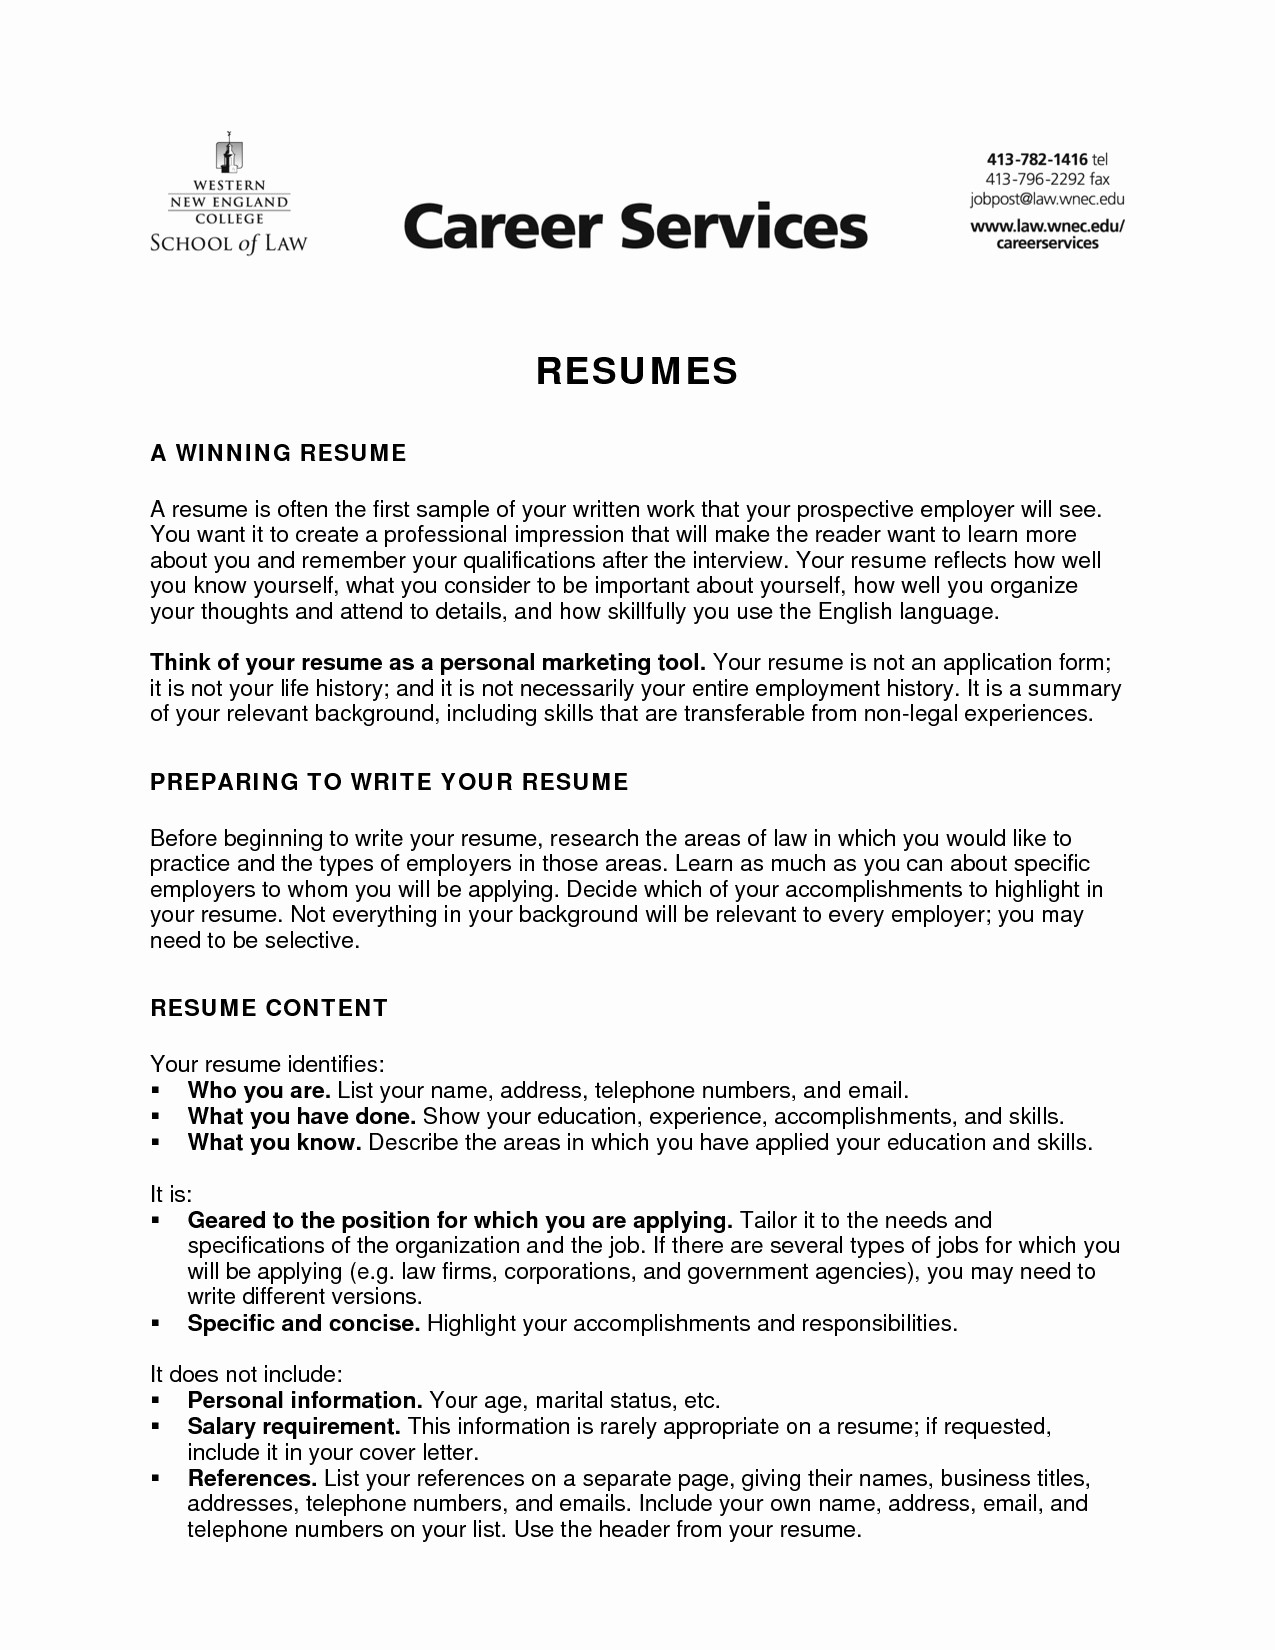 Cover letter with salary requirements template samples for How to address salary expectations in cover letter